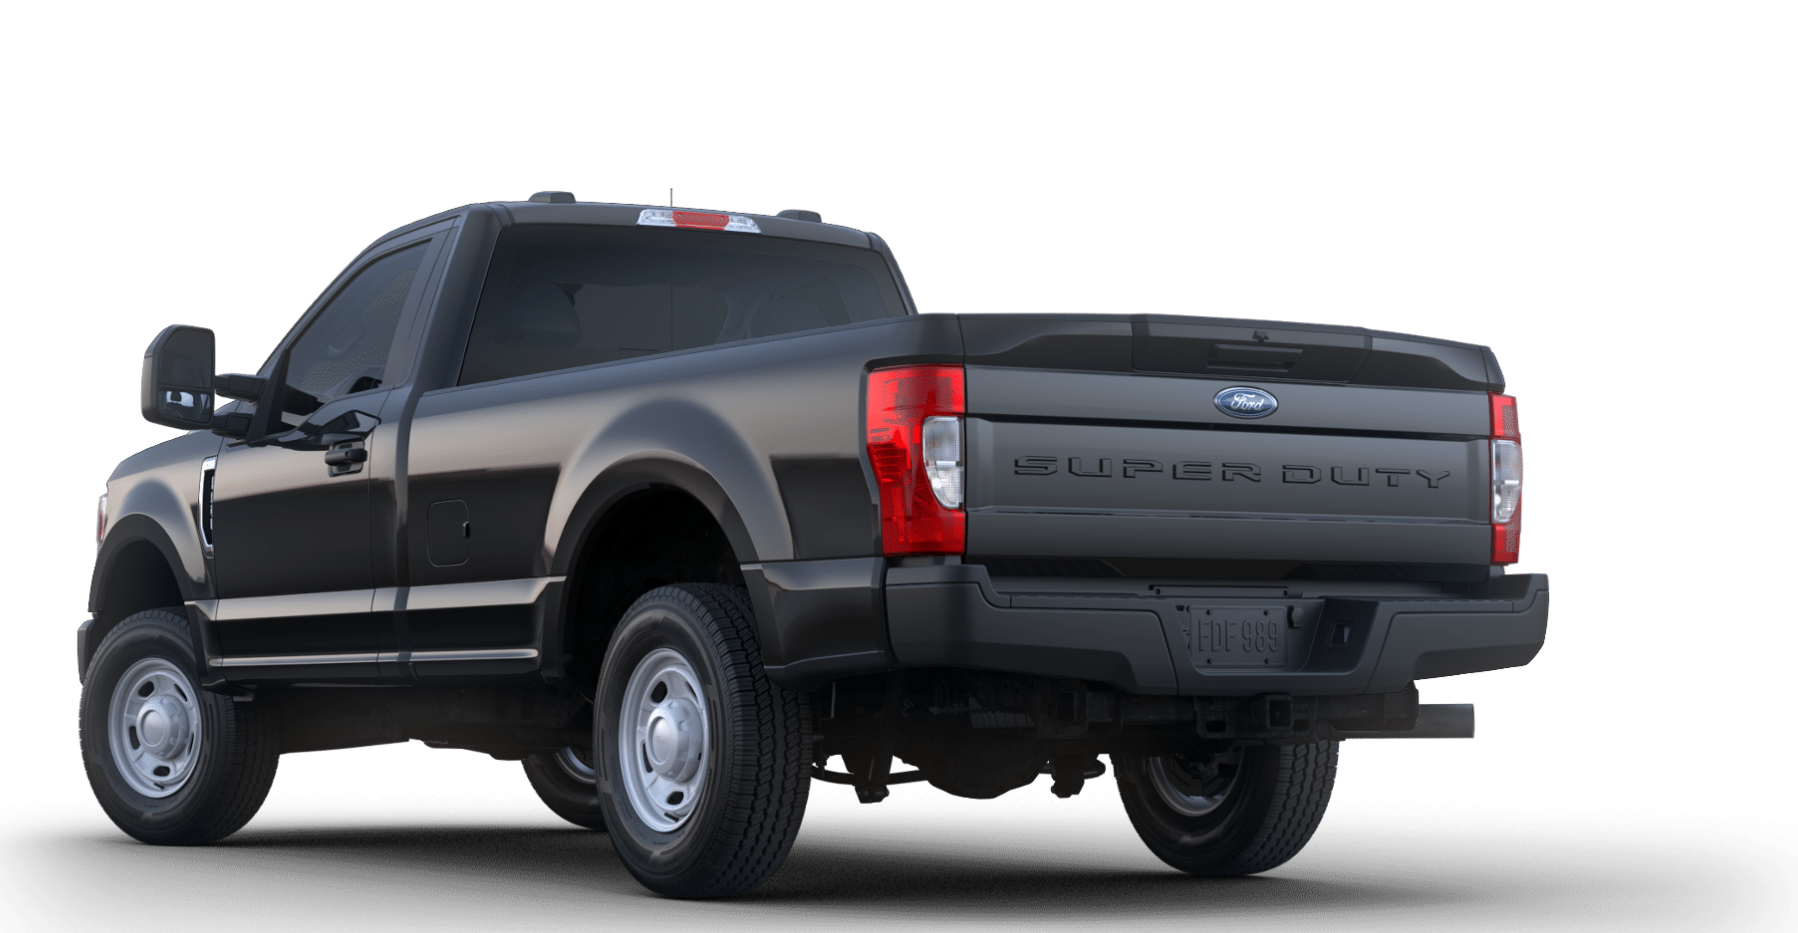 2020 Ford Super Duty F-250 Rear View Black Exterior Picture.png